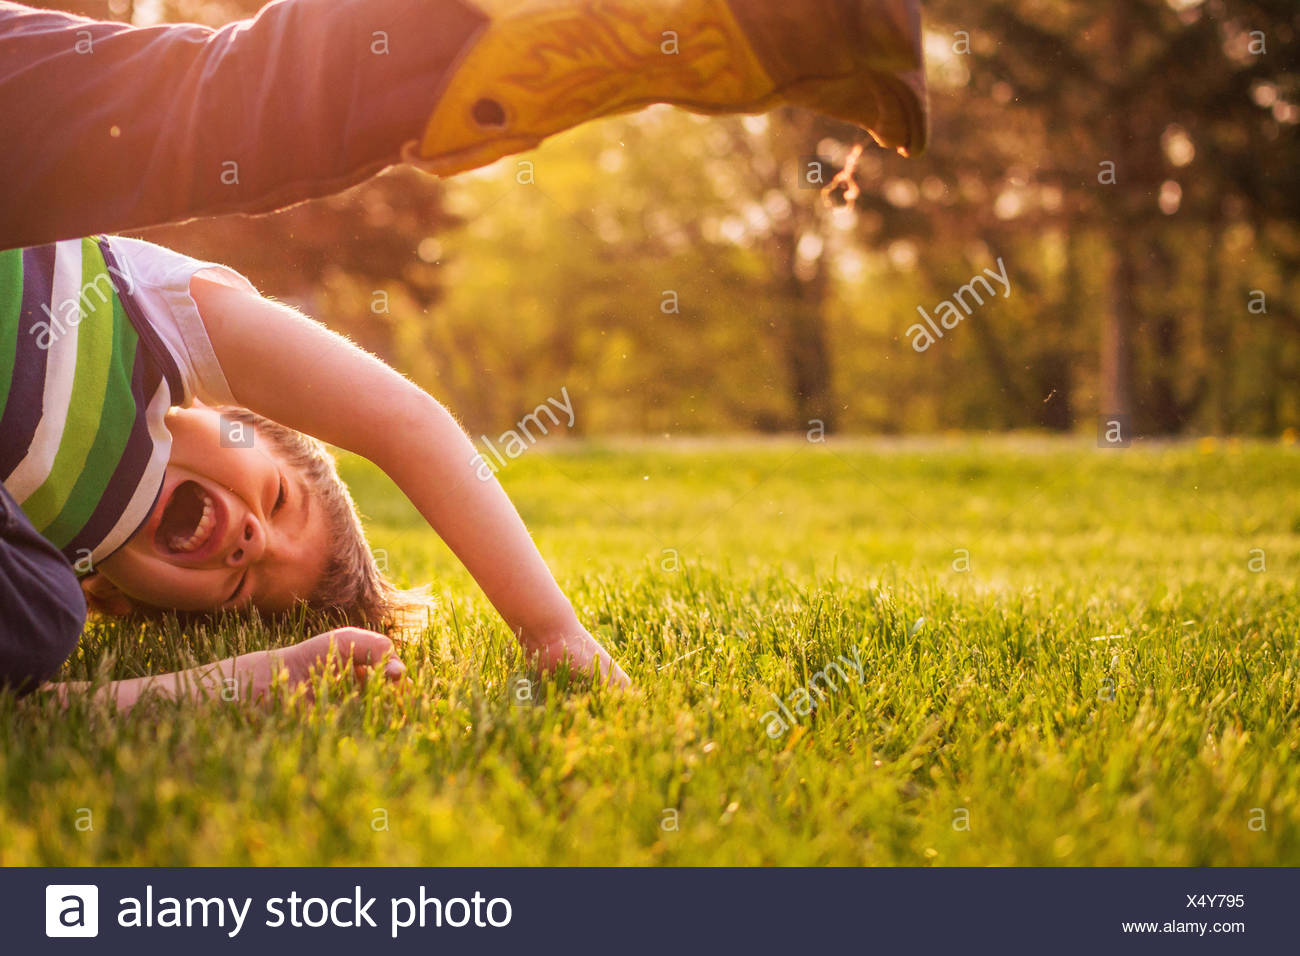 Boy laughing and rolling about on the grass in the garden - Stock Image